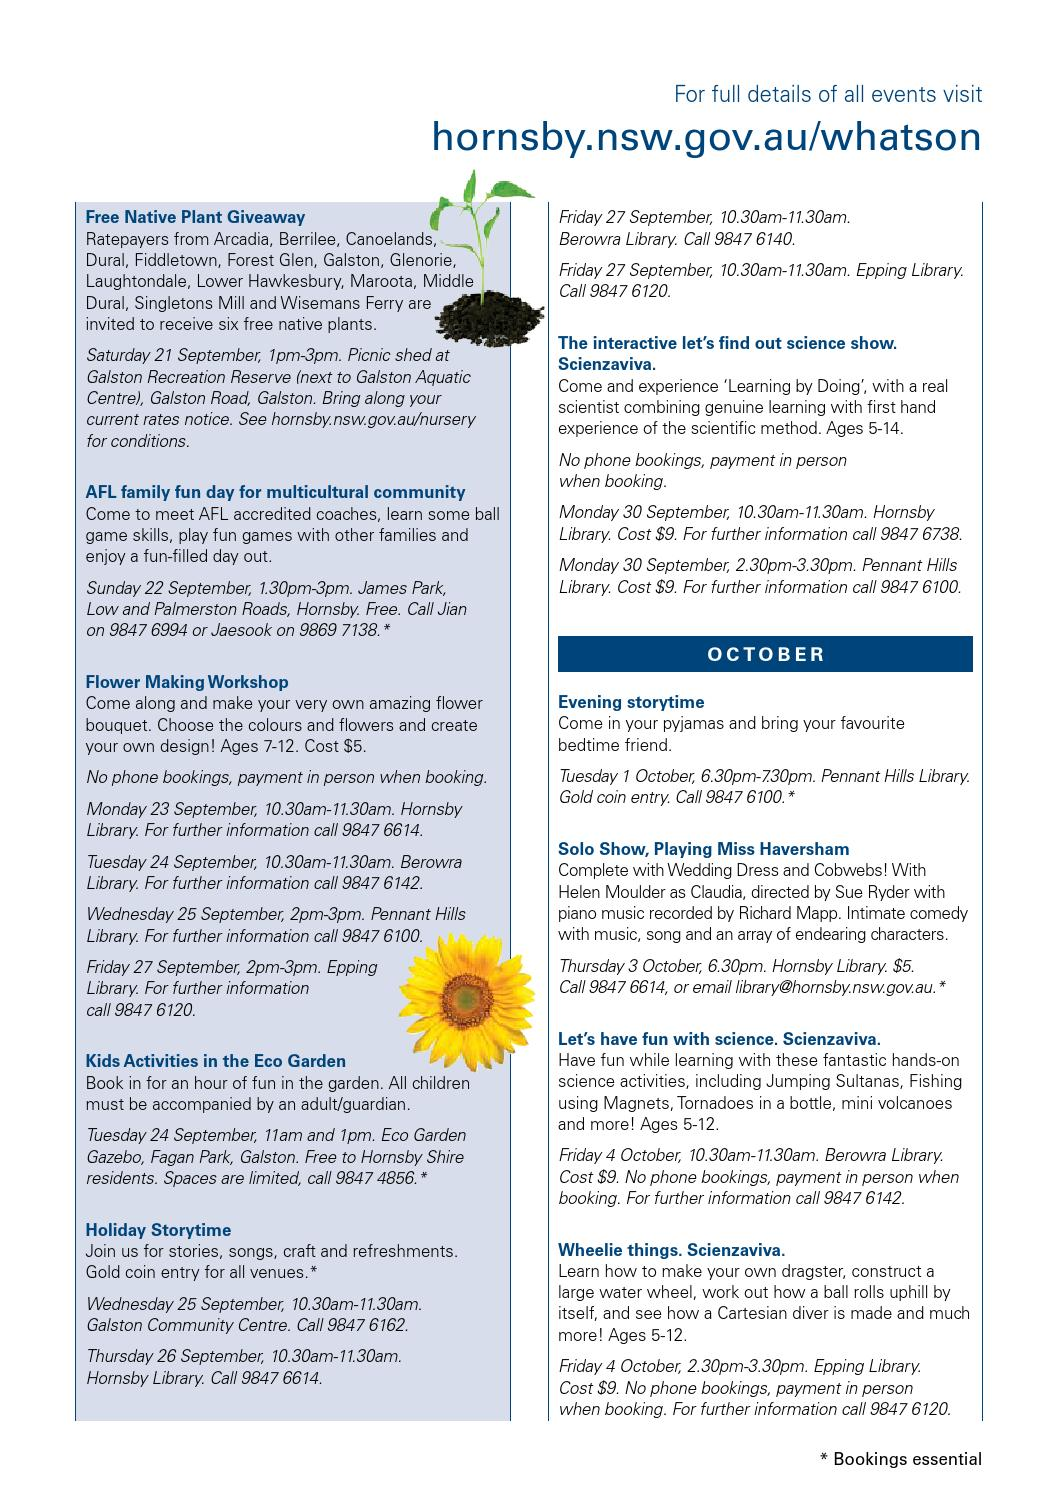 Free Talk Thursday September 22nd Lets >> Hornsby Shire Council Annual Community Report 2012 2013 By Hornsby